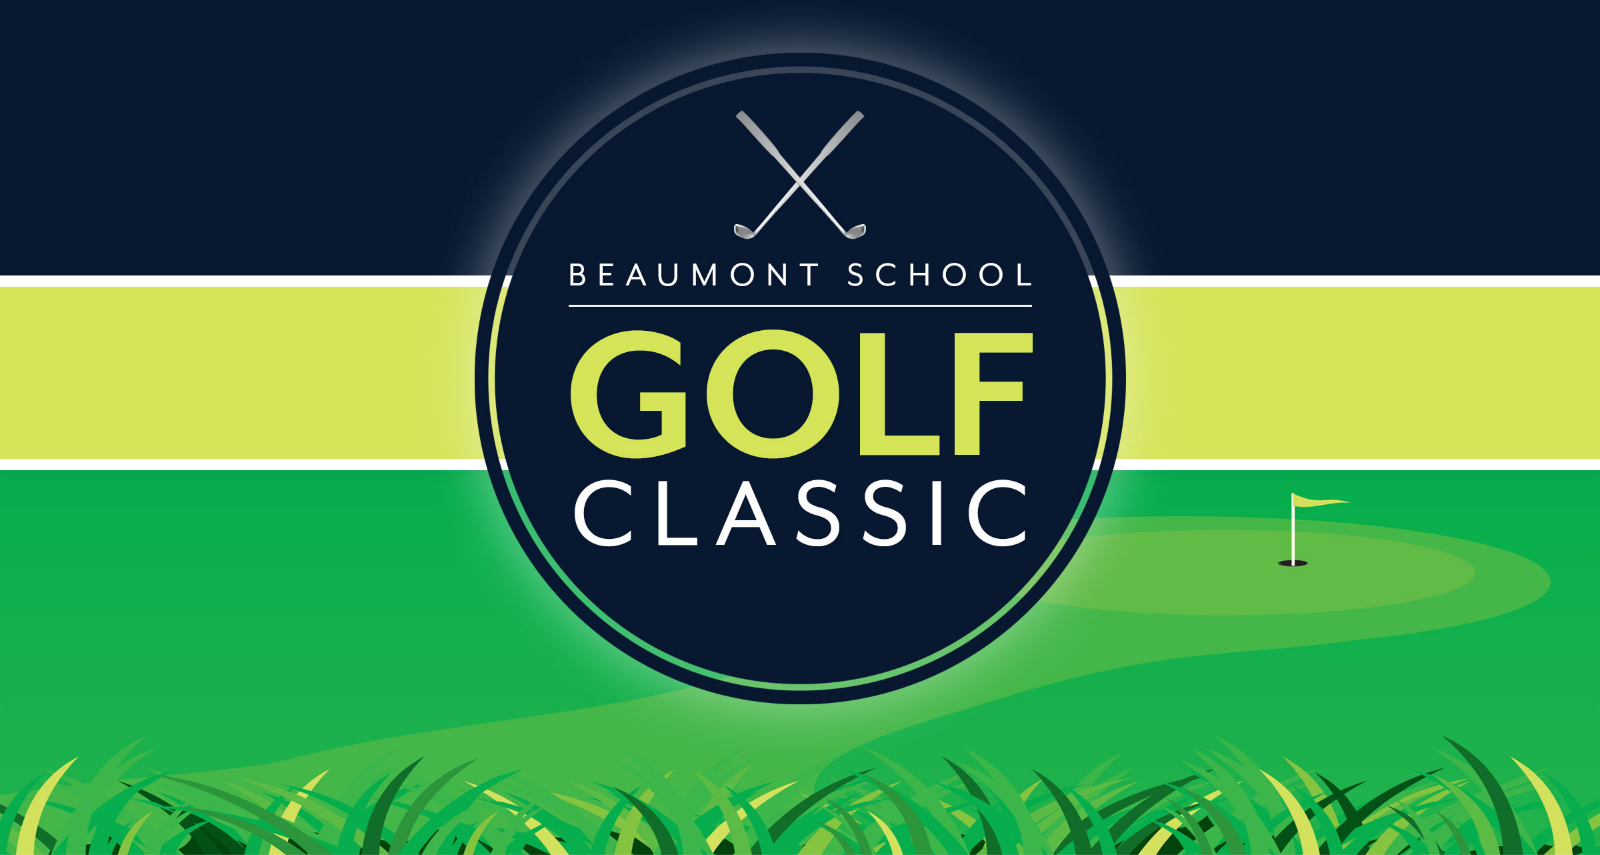 2019 Beaumont Golf Classic to be Held on September 23rd